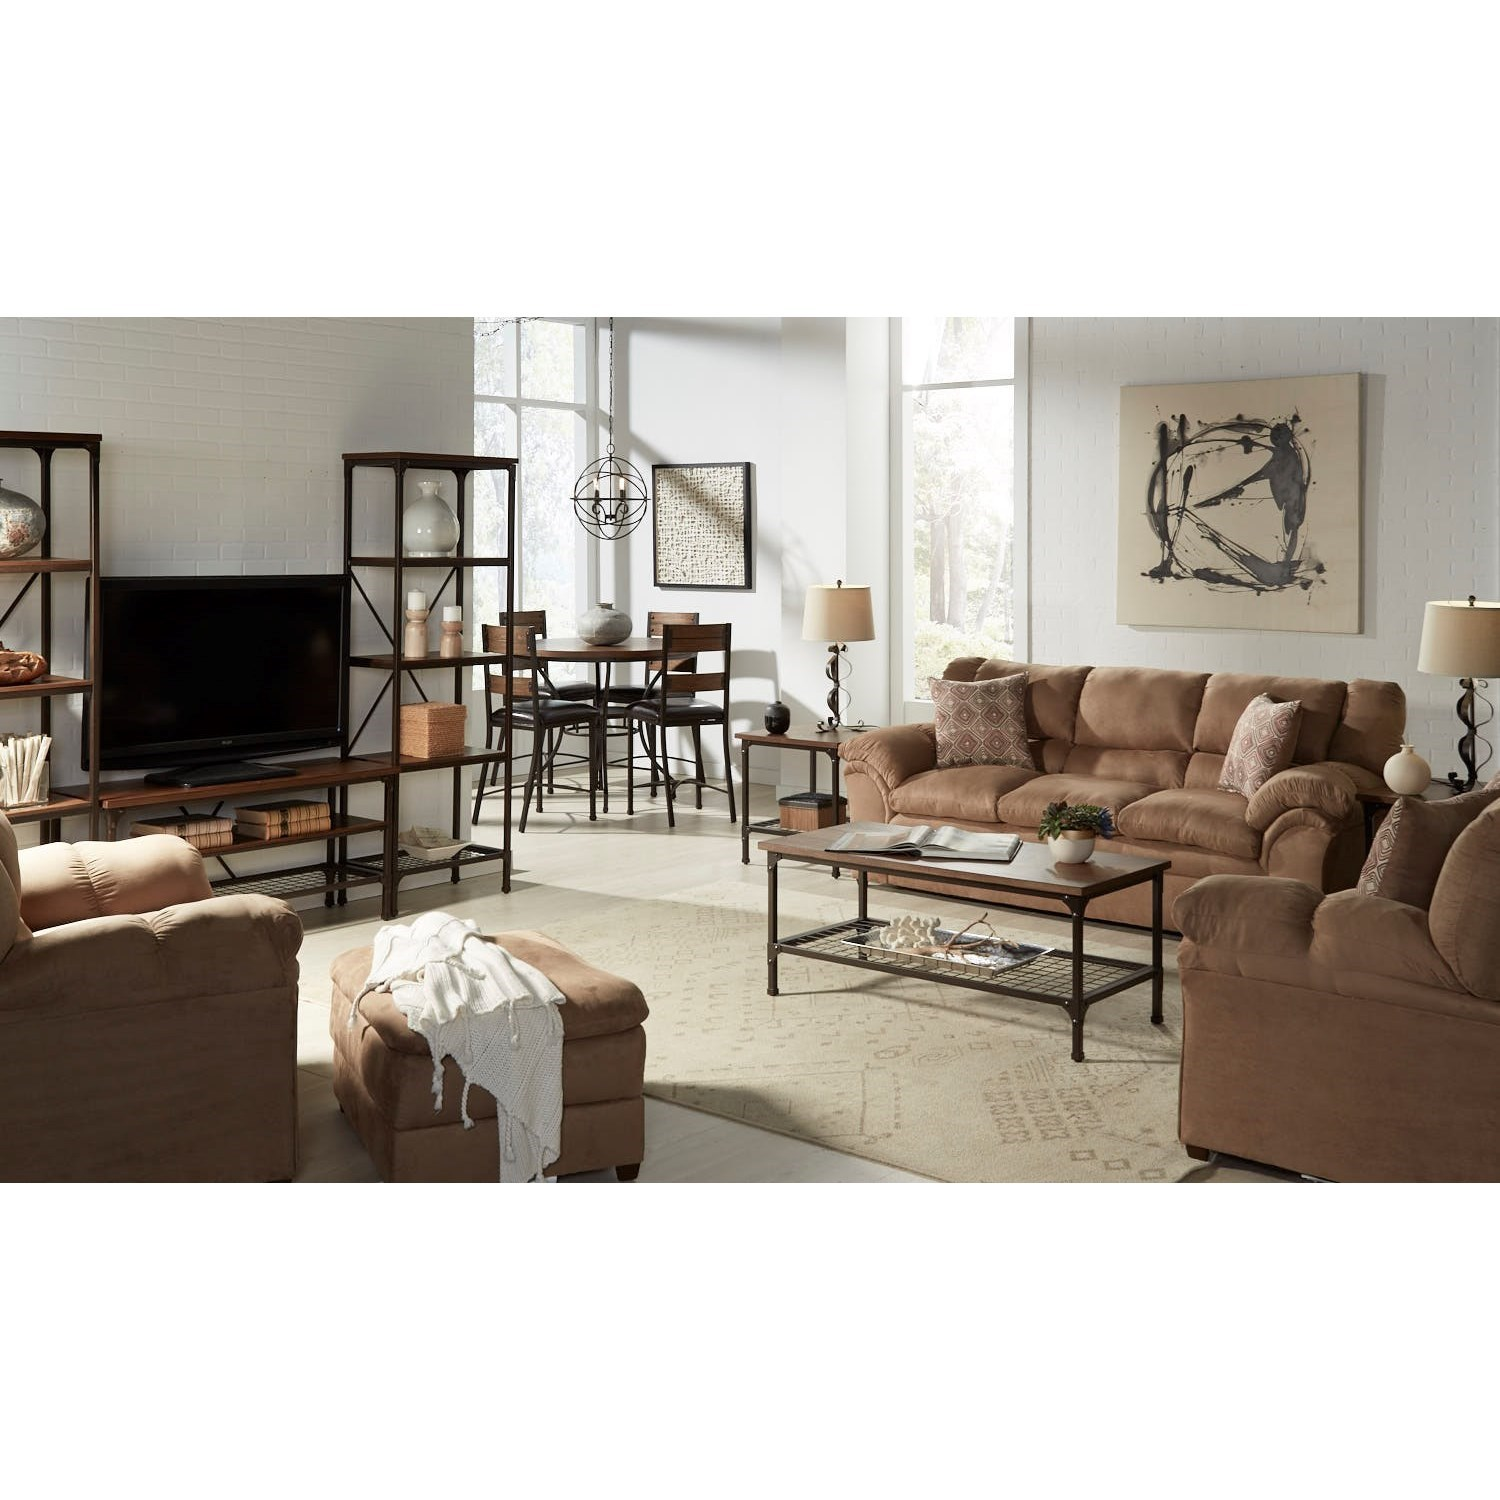 Simmons upholstery 1720 united casual living room group for Living room furniture groups